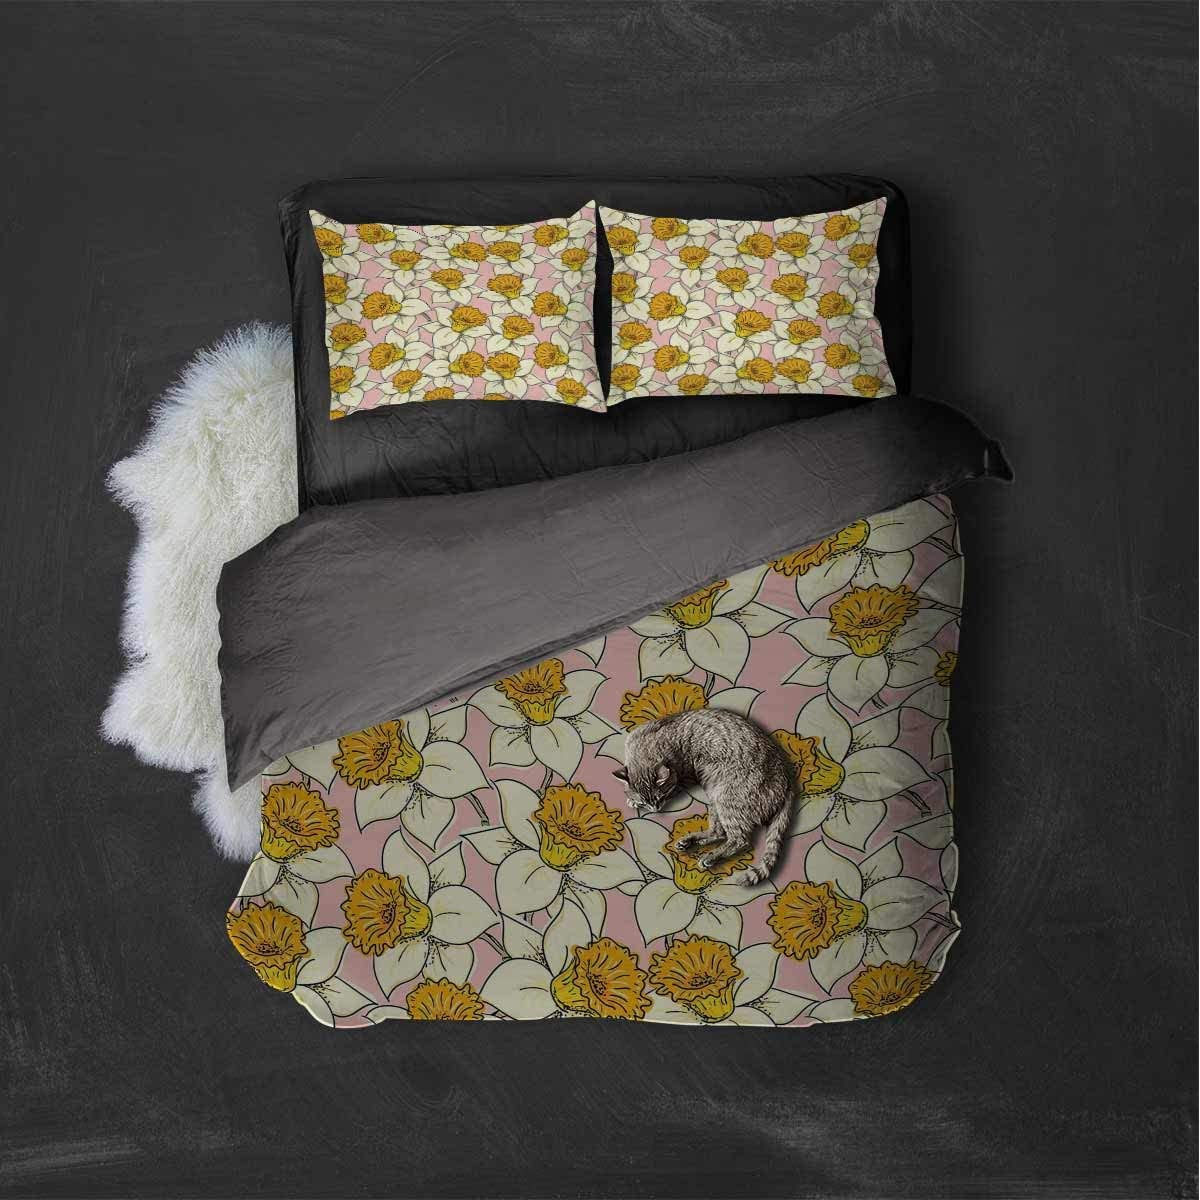 Luoiaax Yellow Flower Extra Large Quilt Cover Playful Spring with Narcissus Daffodils Flourish Graphic Garden Can be Used as a Quilt Cover-Lightweight (Twin) Yellow Cream Pale Pink